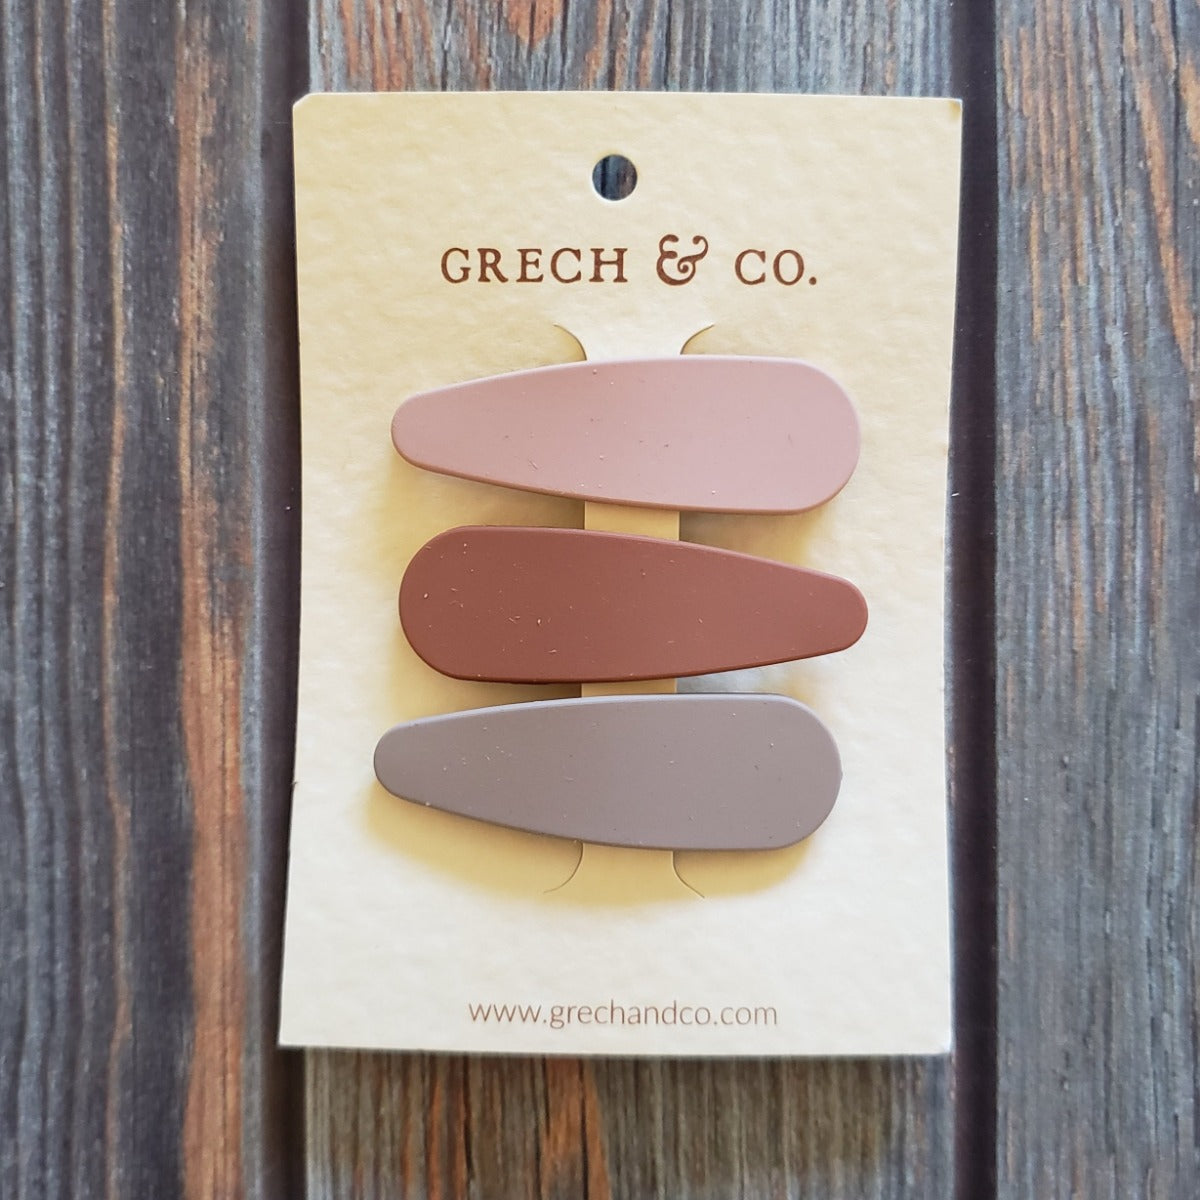 US stockist of Grech & Co's 3 pack of matte snap clip set in stone, shell and rust.